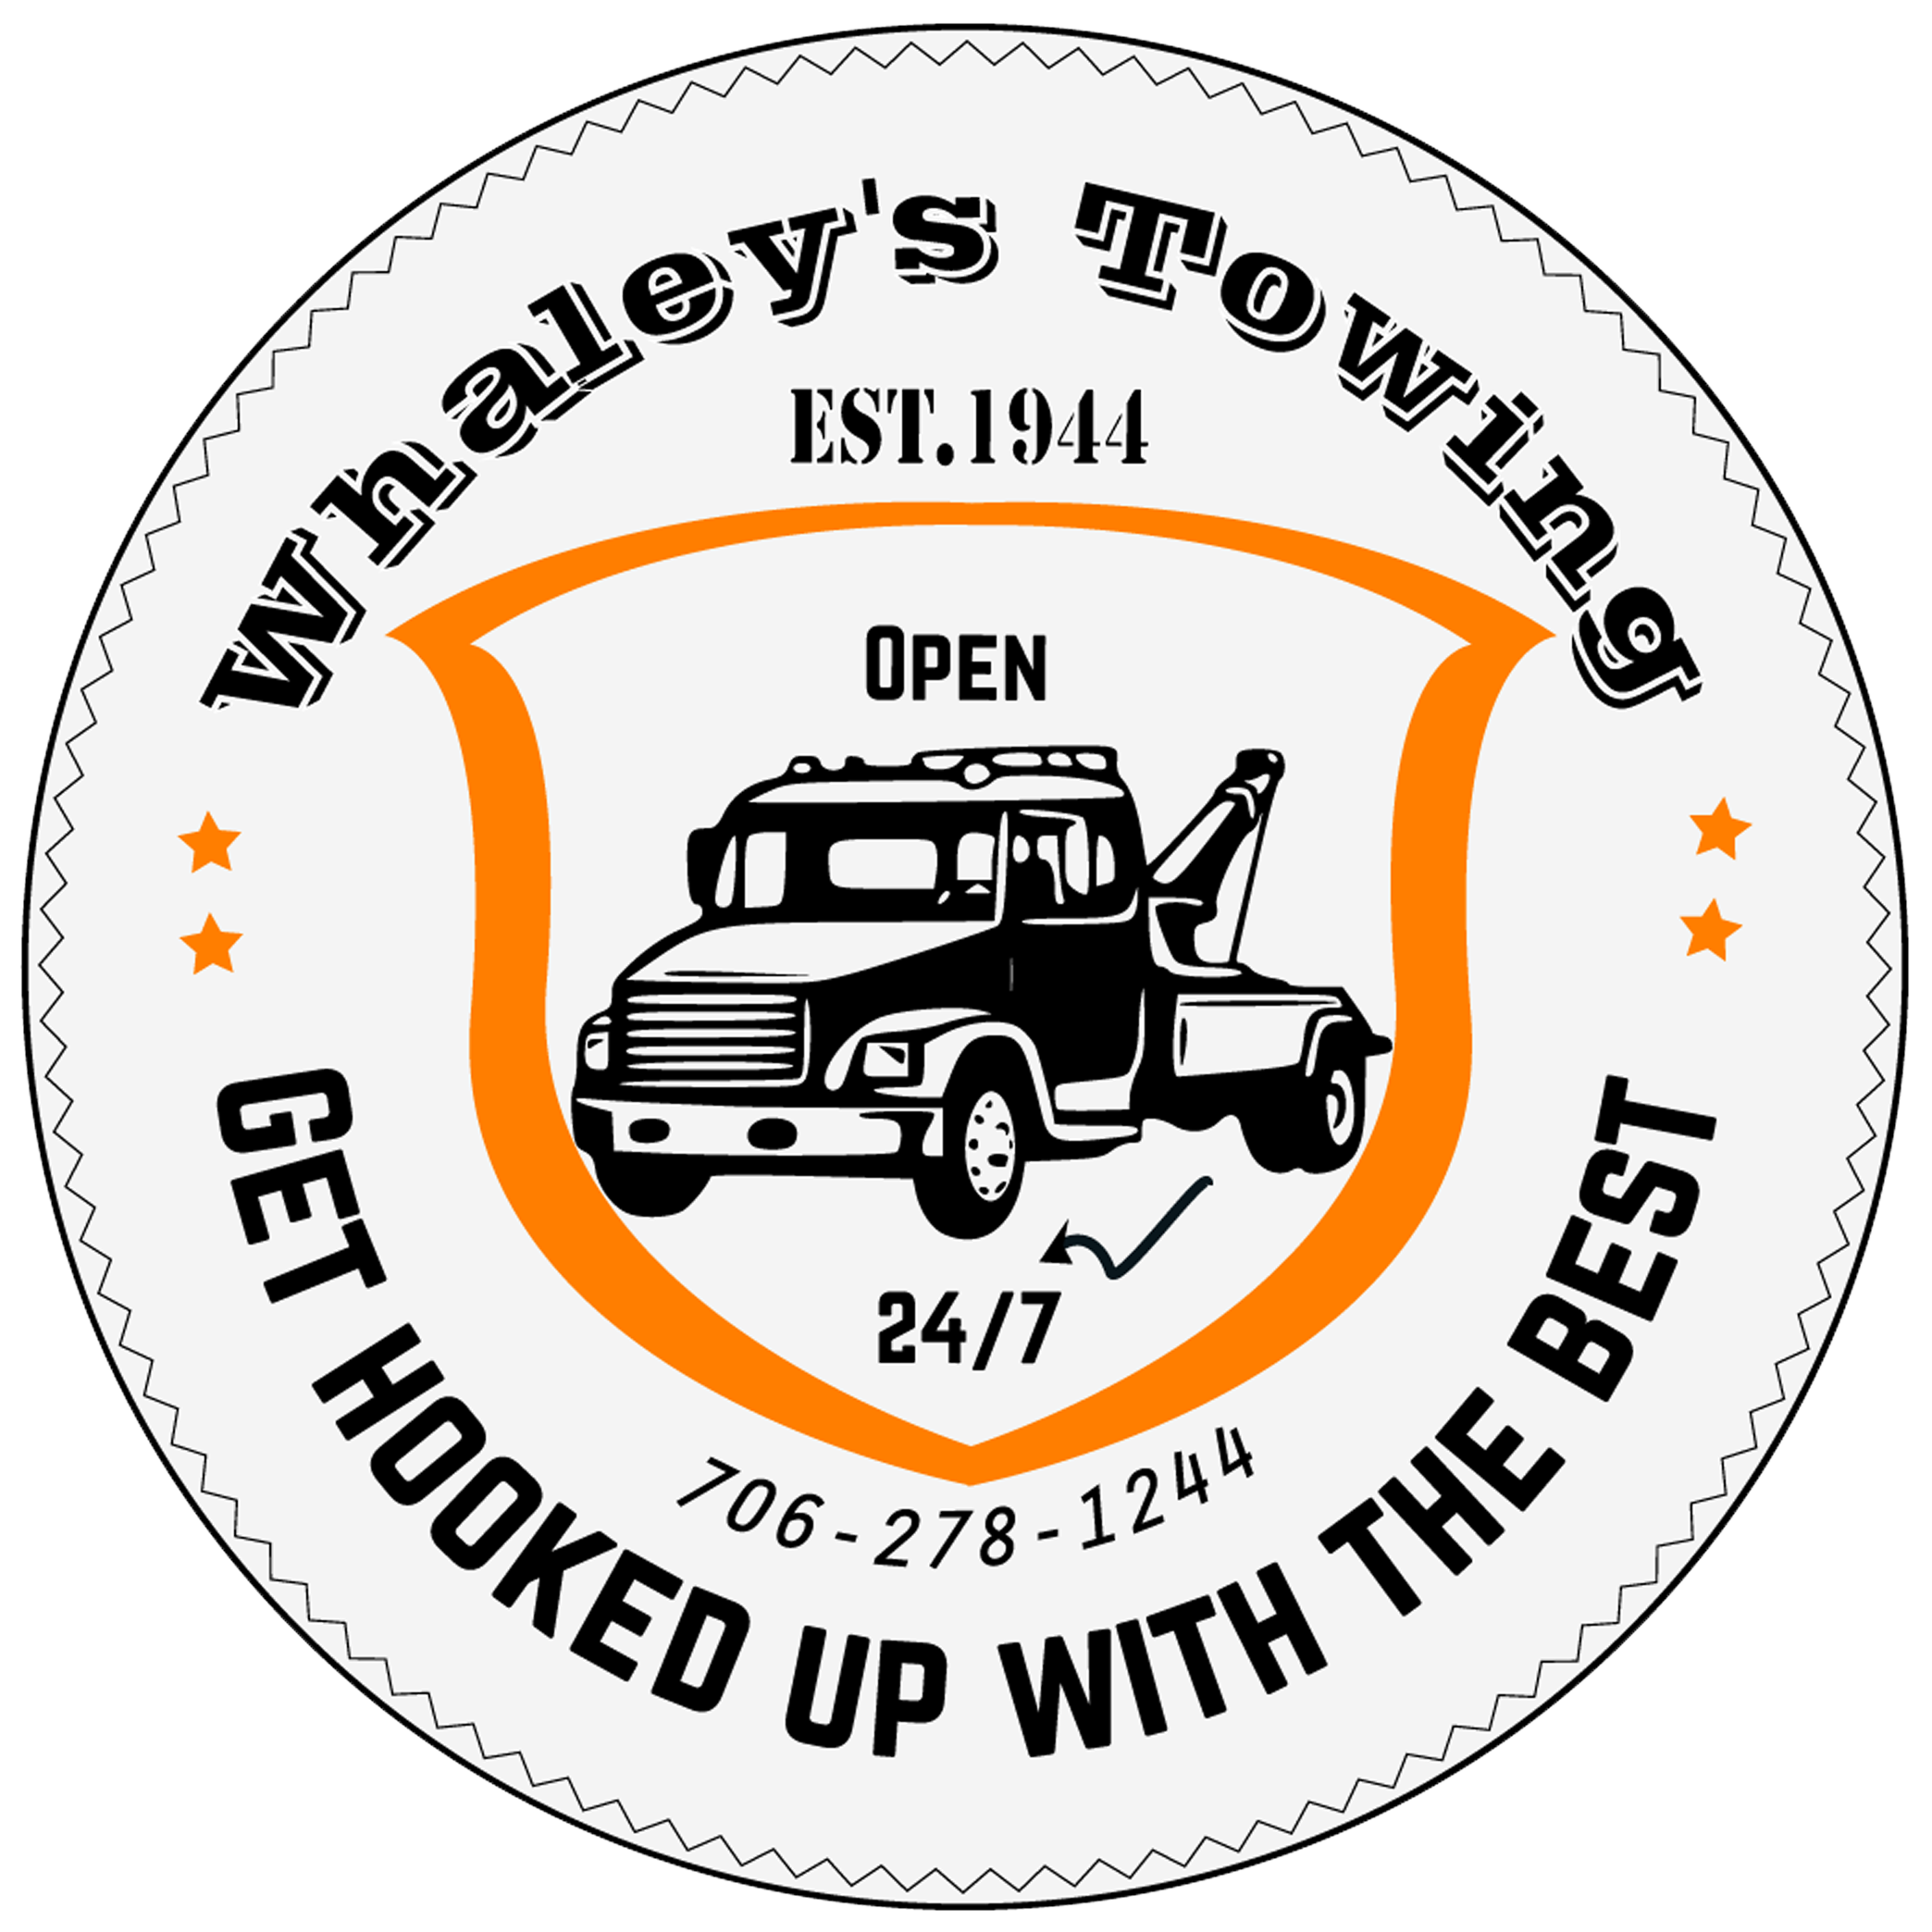 Whaley's Towing logo